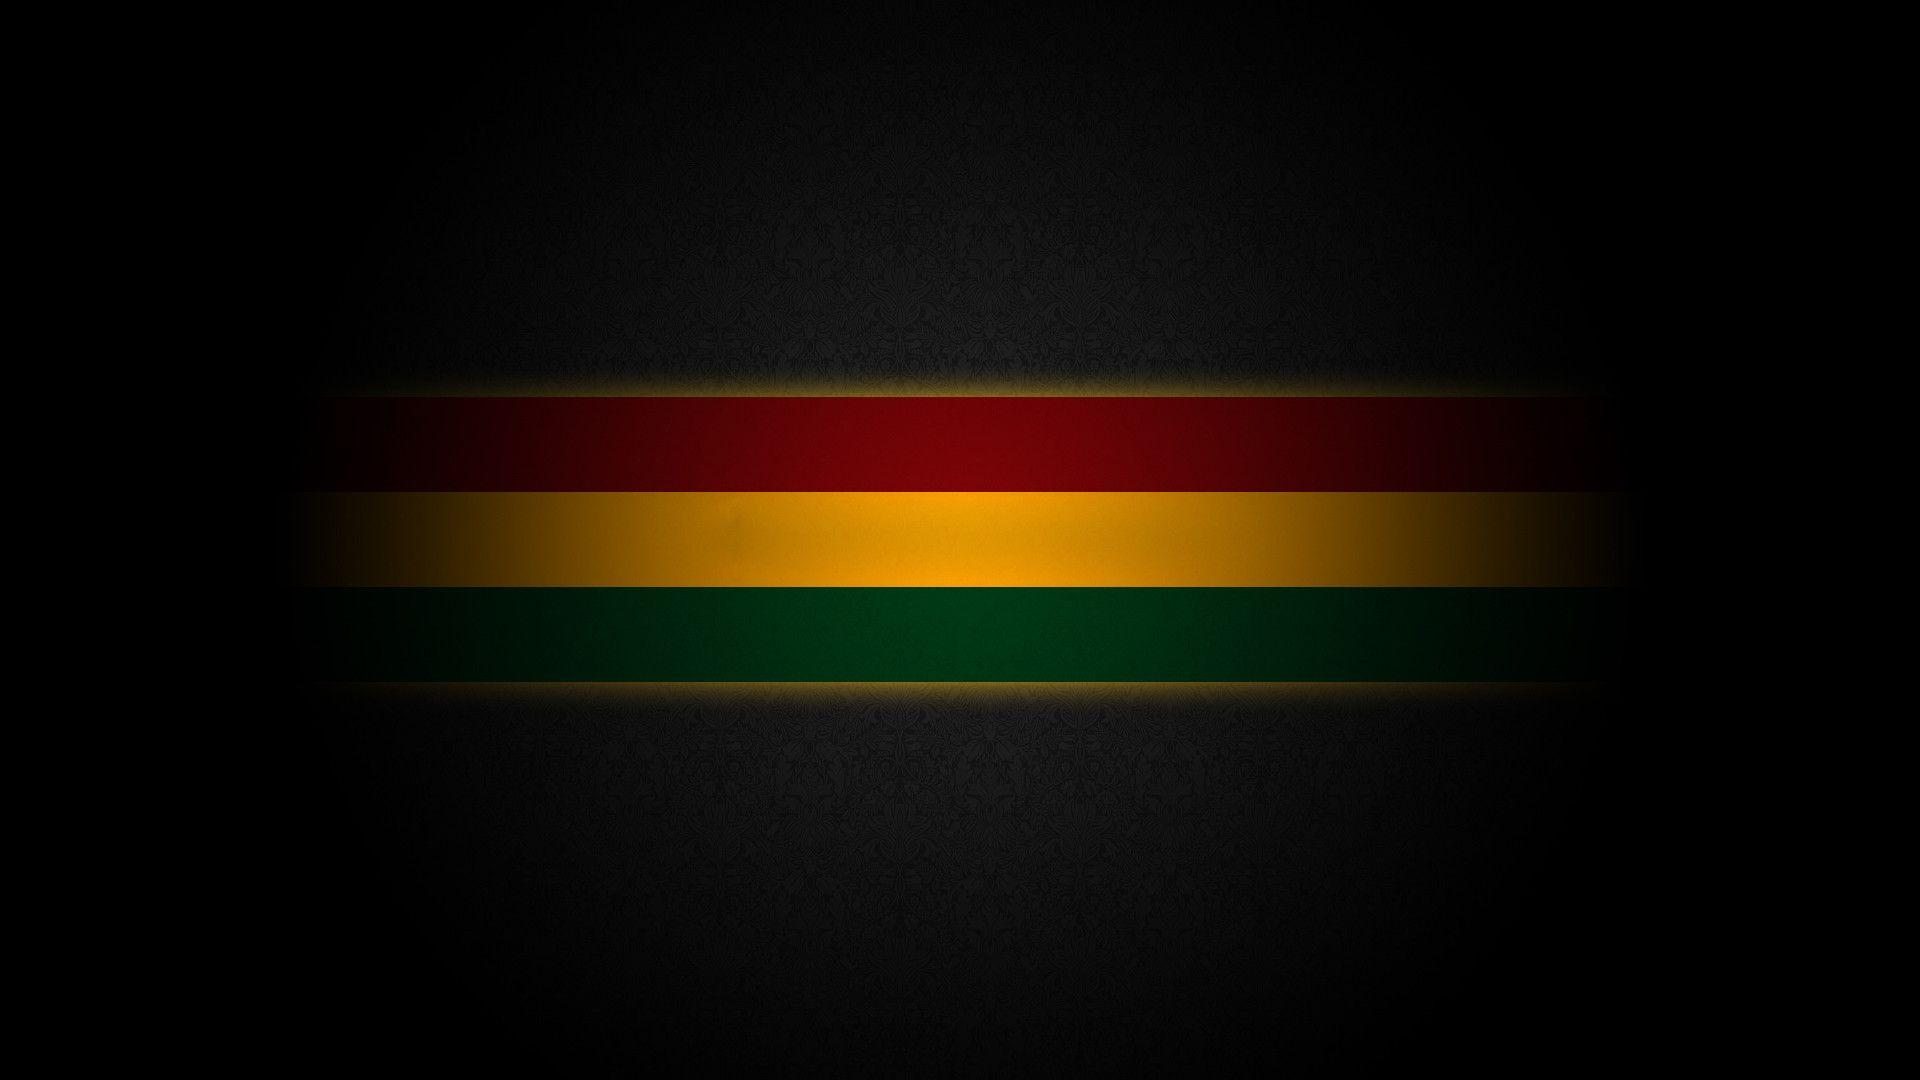 Jamaica Flag Iphone Wallpapers ✓ The Galleries of HD Wallpapers